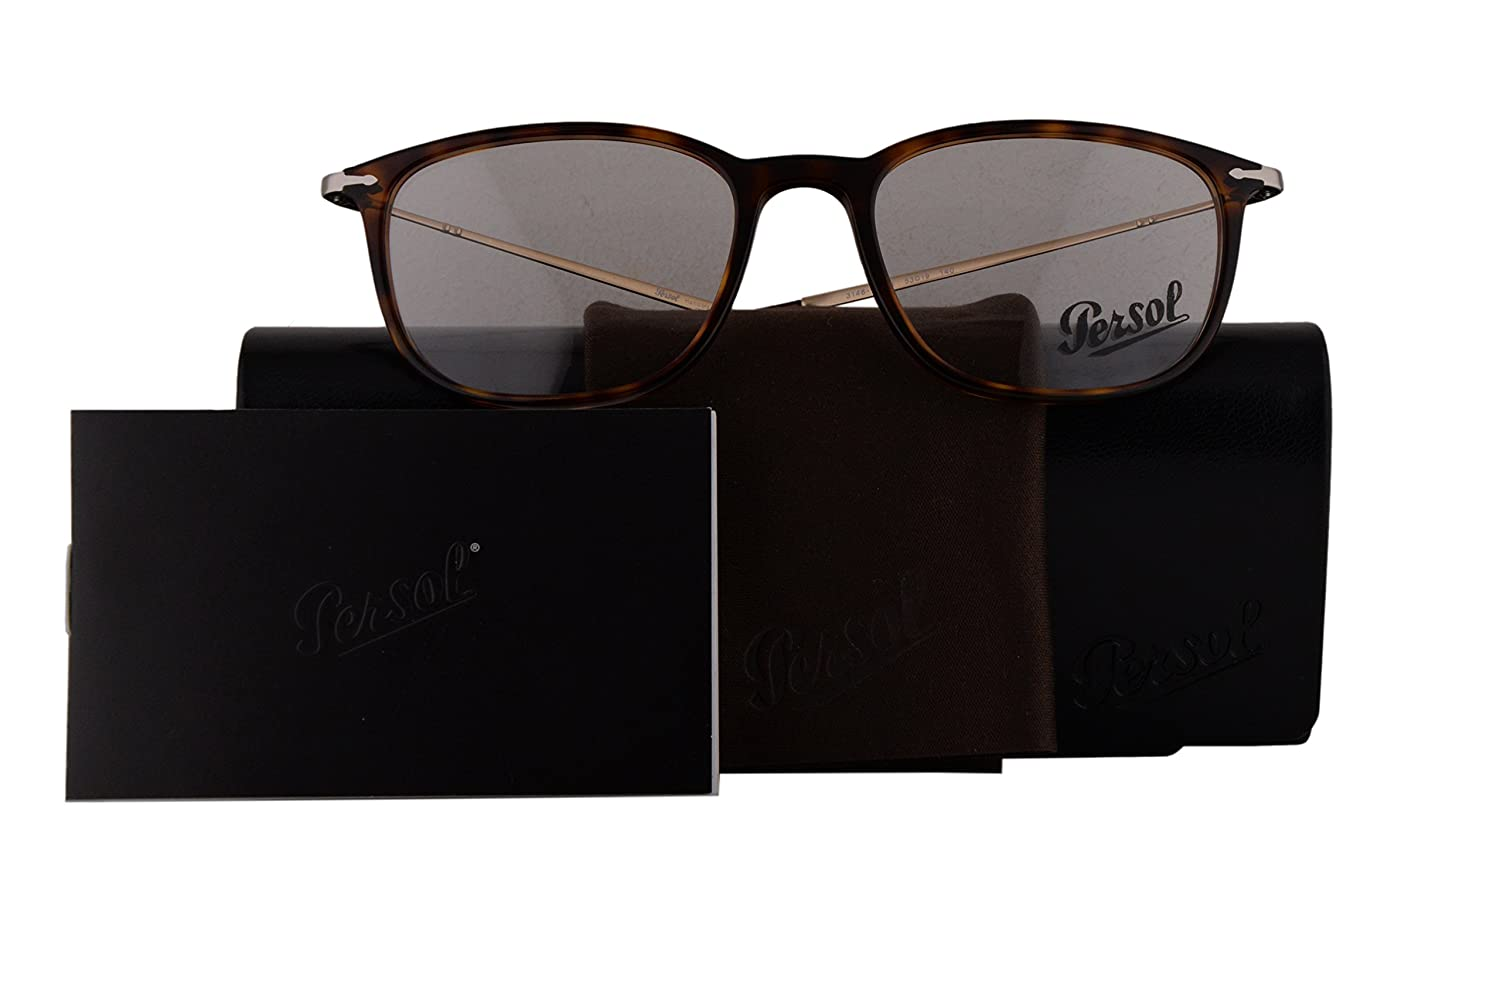 185c1a66ac79d Persol Authentic Eyeglasses PO3146V Havana w Clear Demo Lens 24 PO 3146-V ( 53mm)  Amazon.co.uk  Clothing